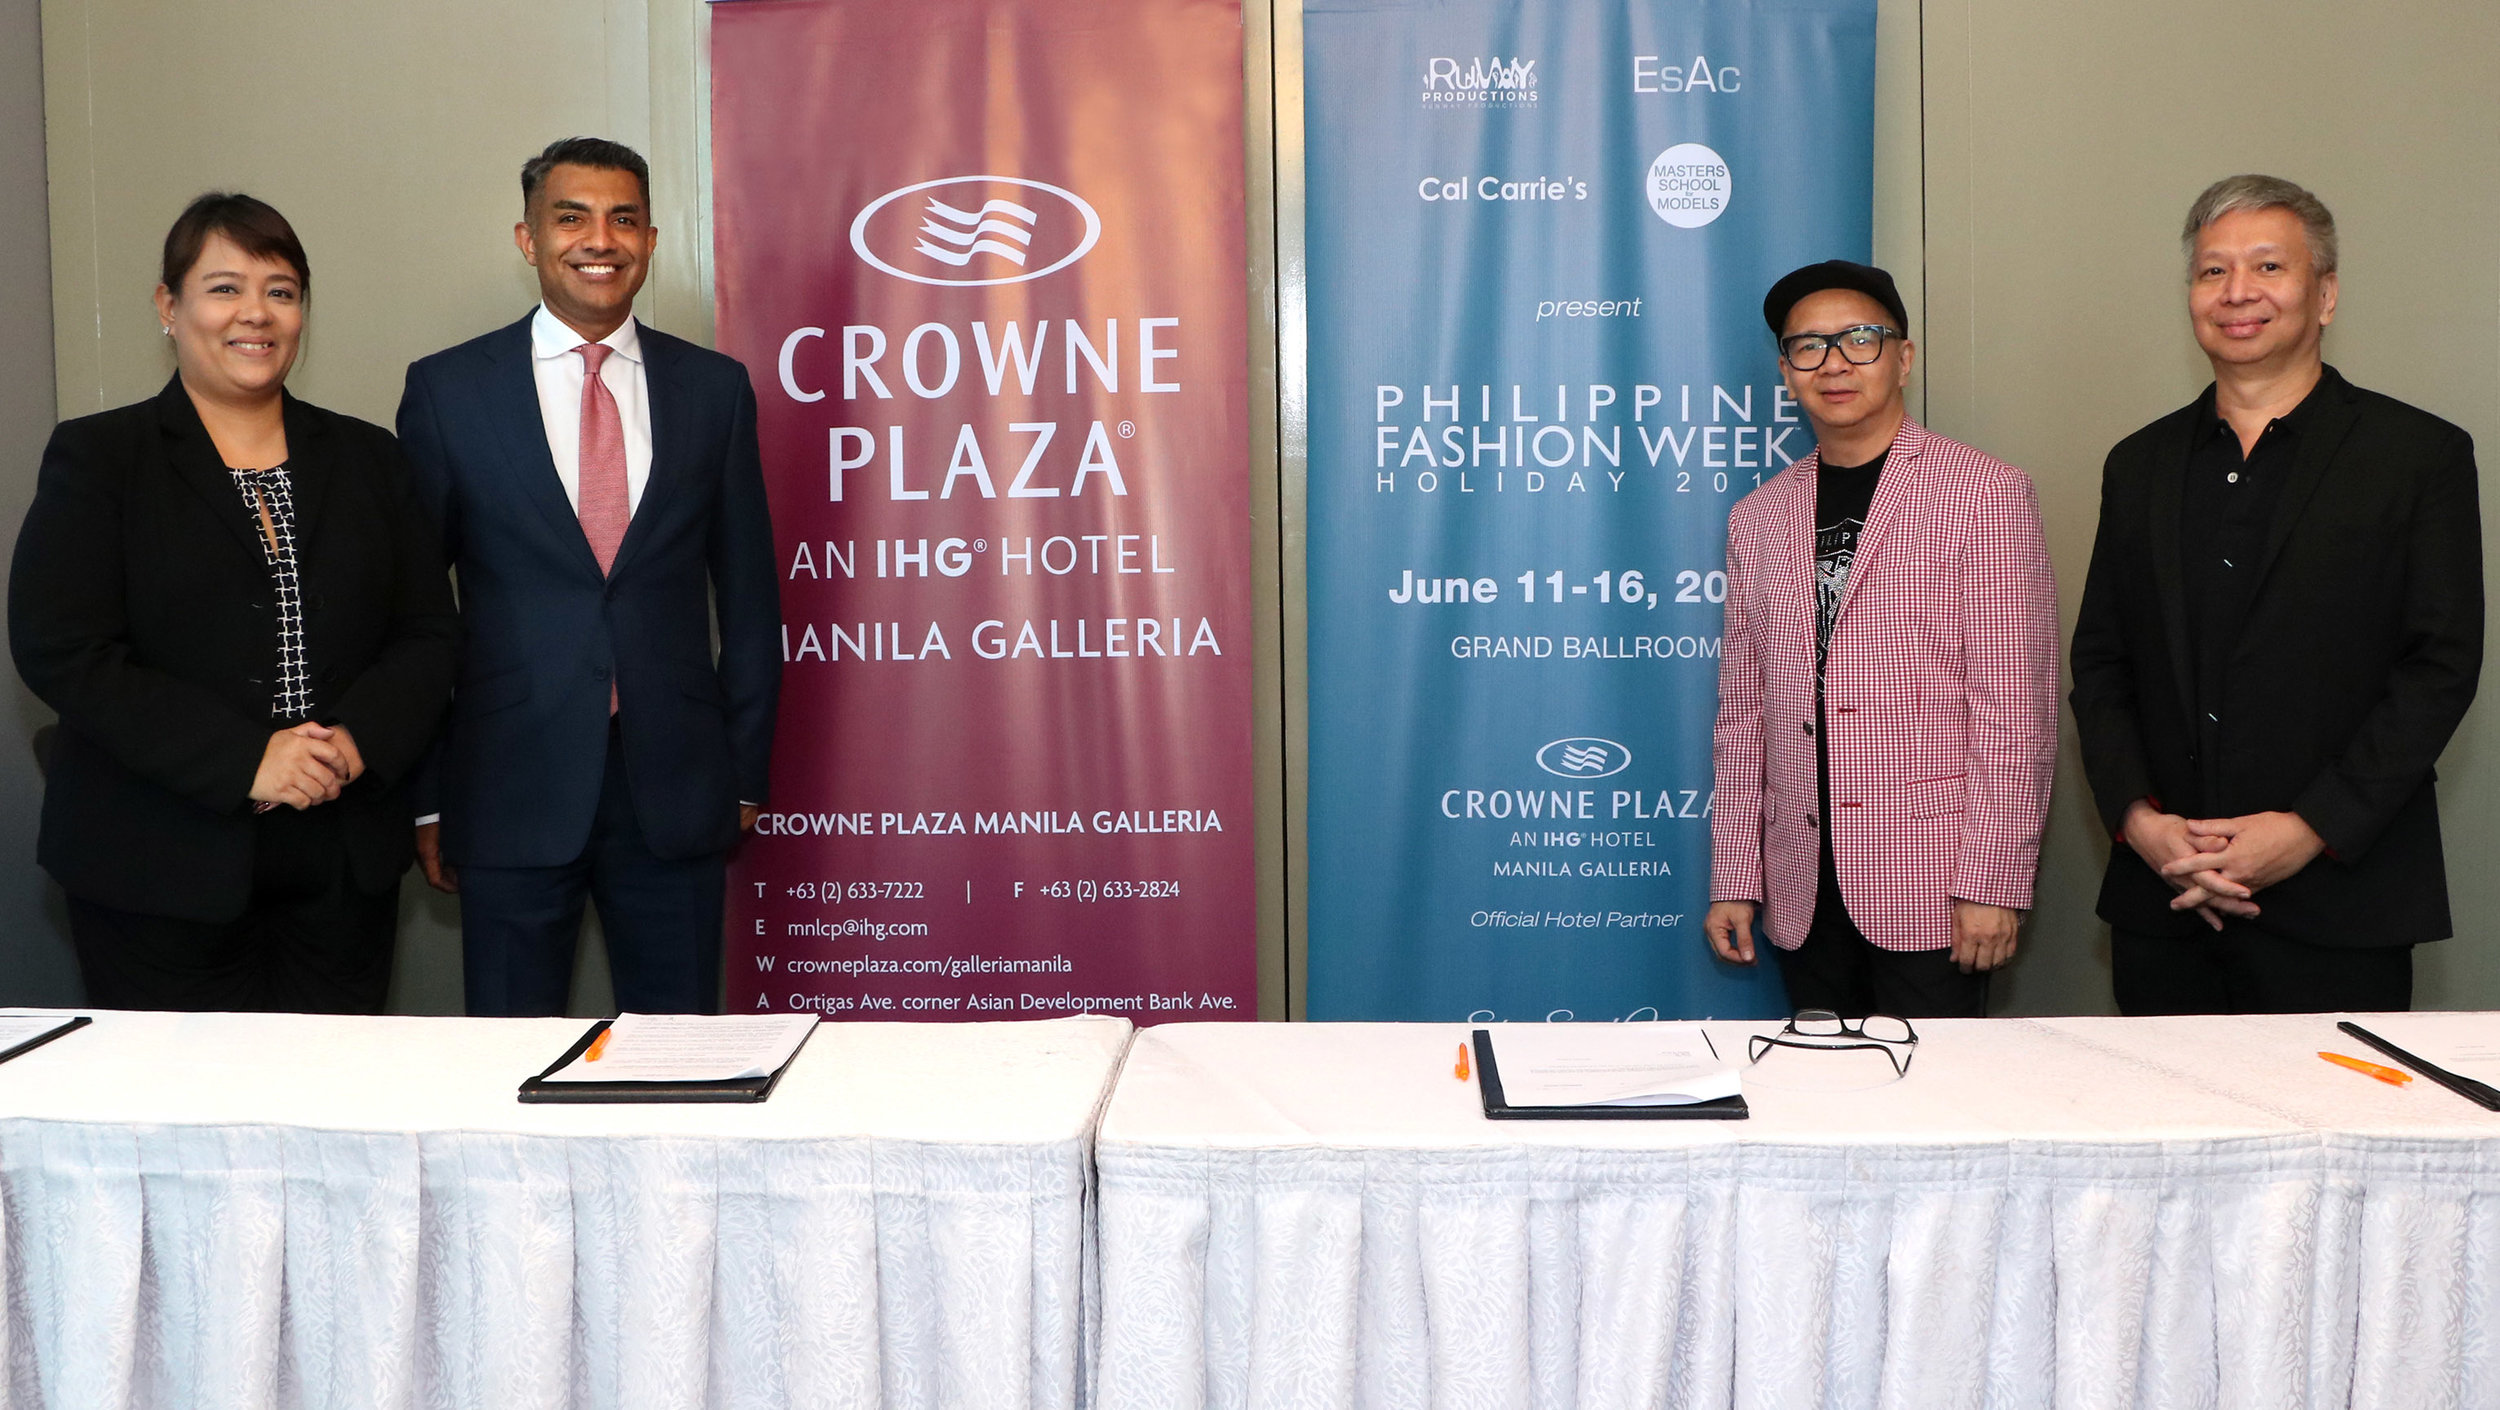 Crowne Plaza Manila Galleria and Philippine Fashion Week (Runway Productions) mark three-year partnership at the contract signing and press announcement on June 11, 2019 with Crowne Plaza Manila Galleria General Manager Gaurav Rai, Executive Assistant Manager Gibeth Gloria, Executive Producers and owner of Runway Productions Joey and Audie Espino.